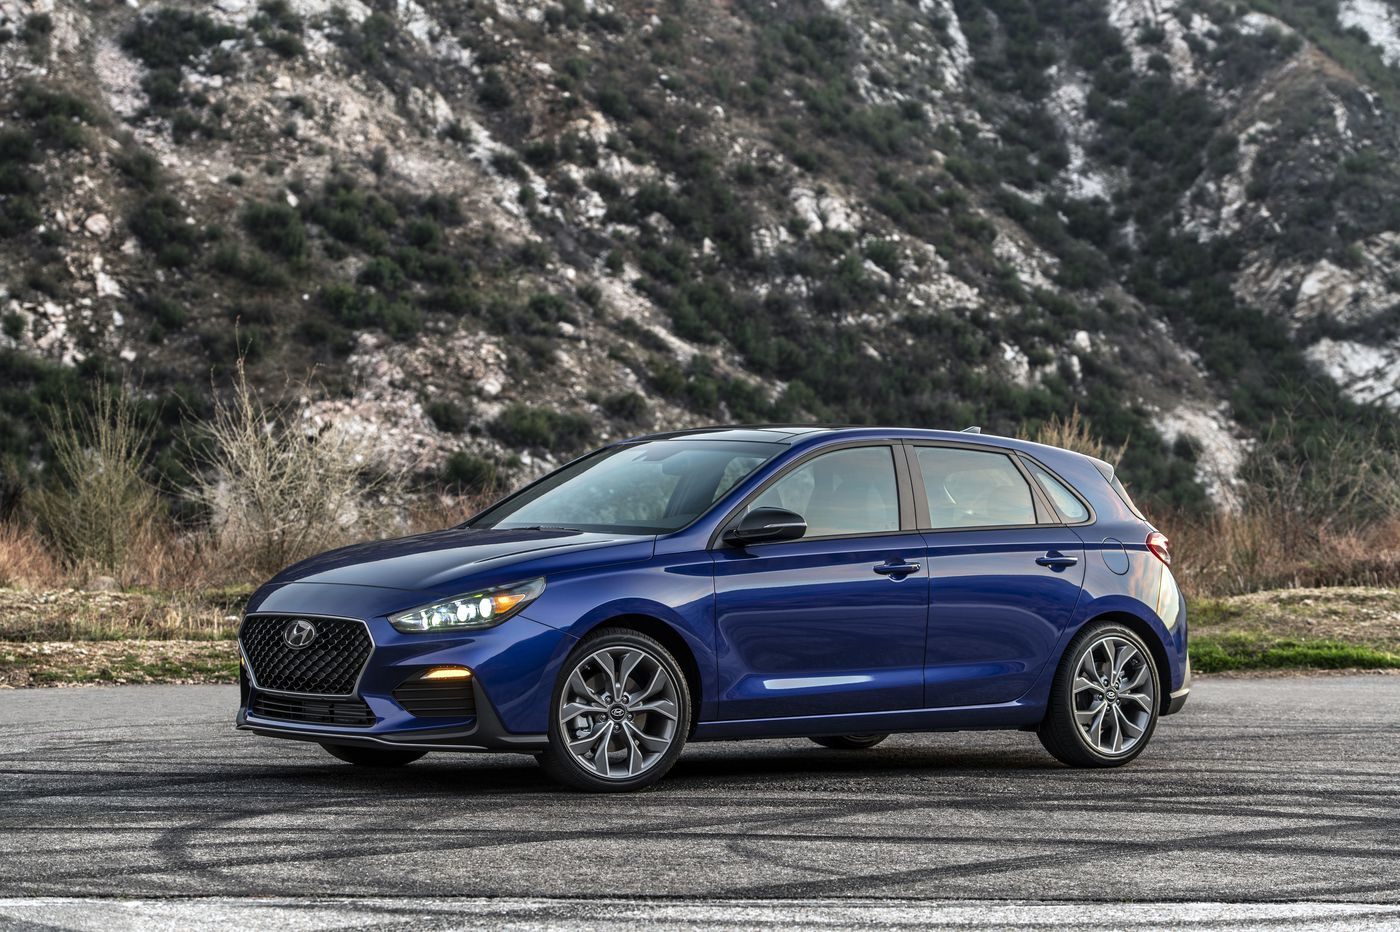 2020 hyundai elantra gt n line offers fun on a budget 2020 hyundai elantra gt n line offers